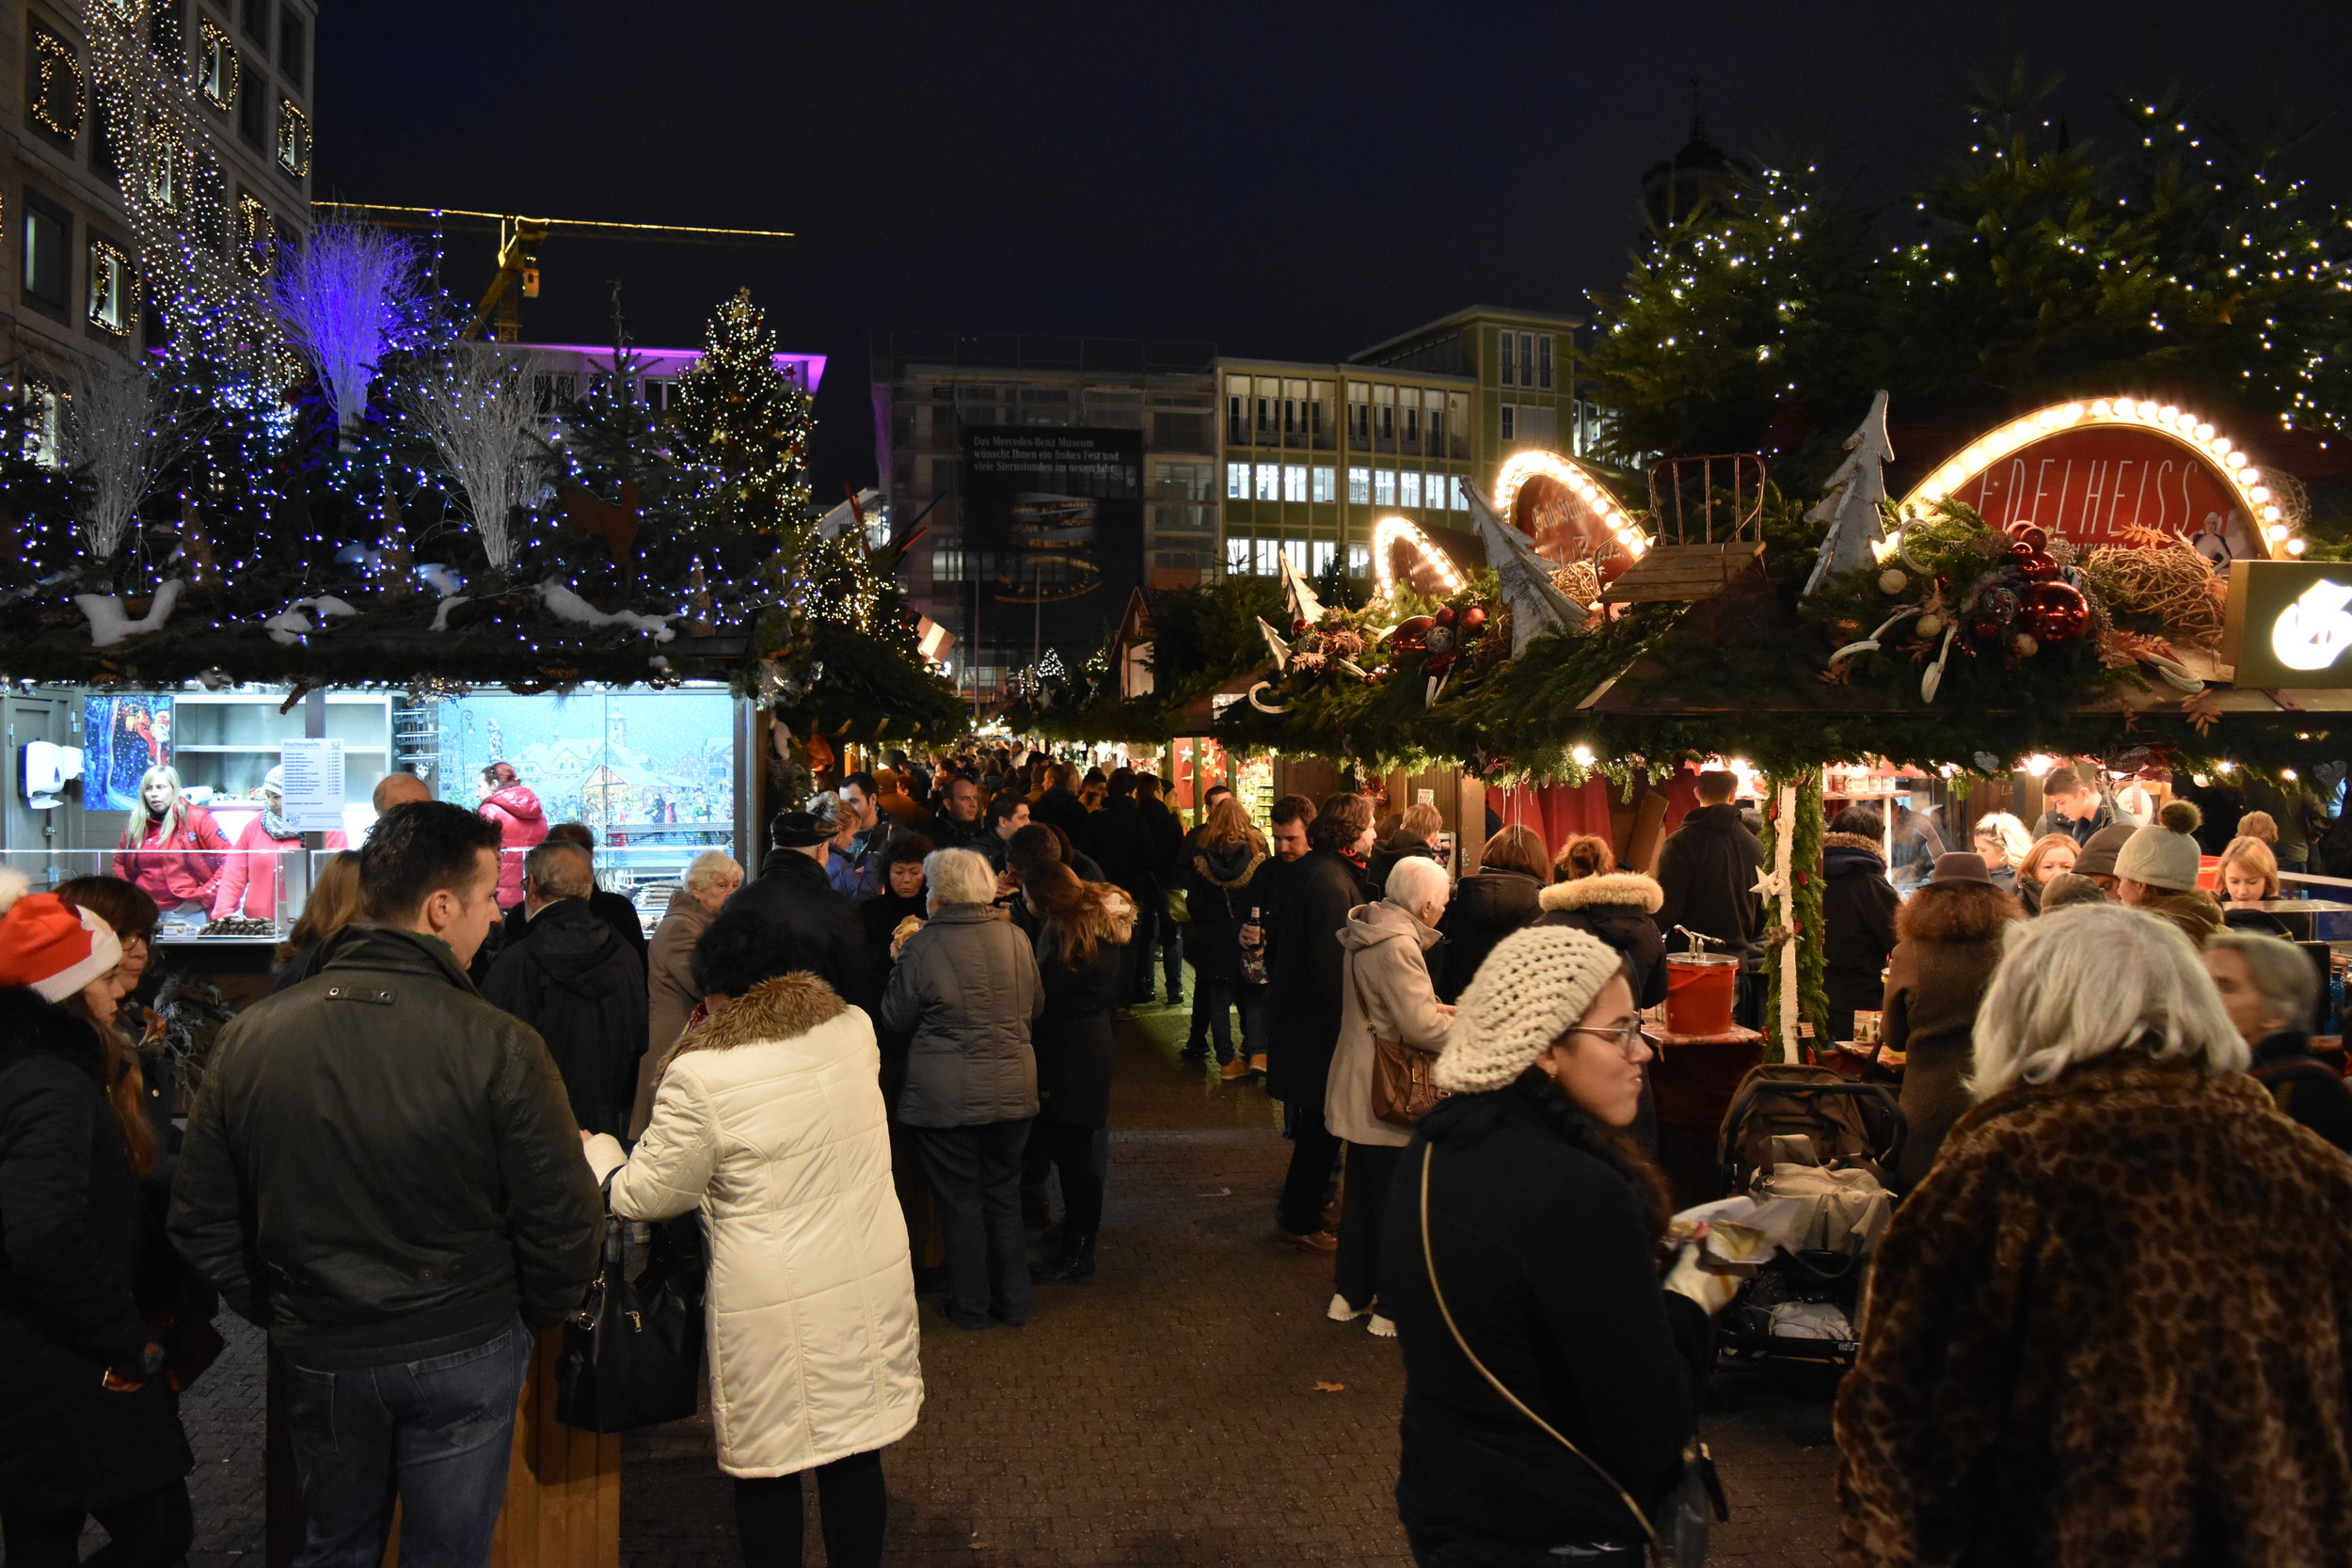 Attendees visit the row of decorative booths at the Christmas Market in Stuttgart, Germany.